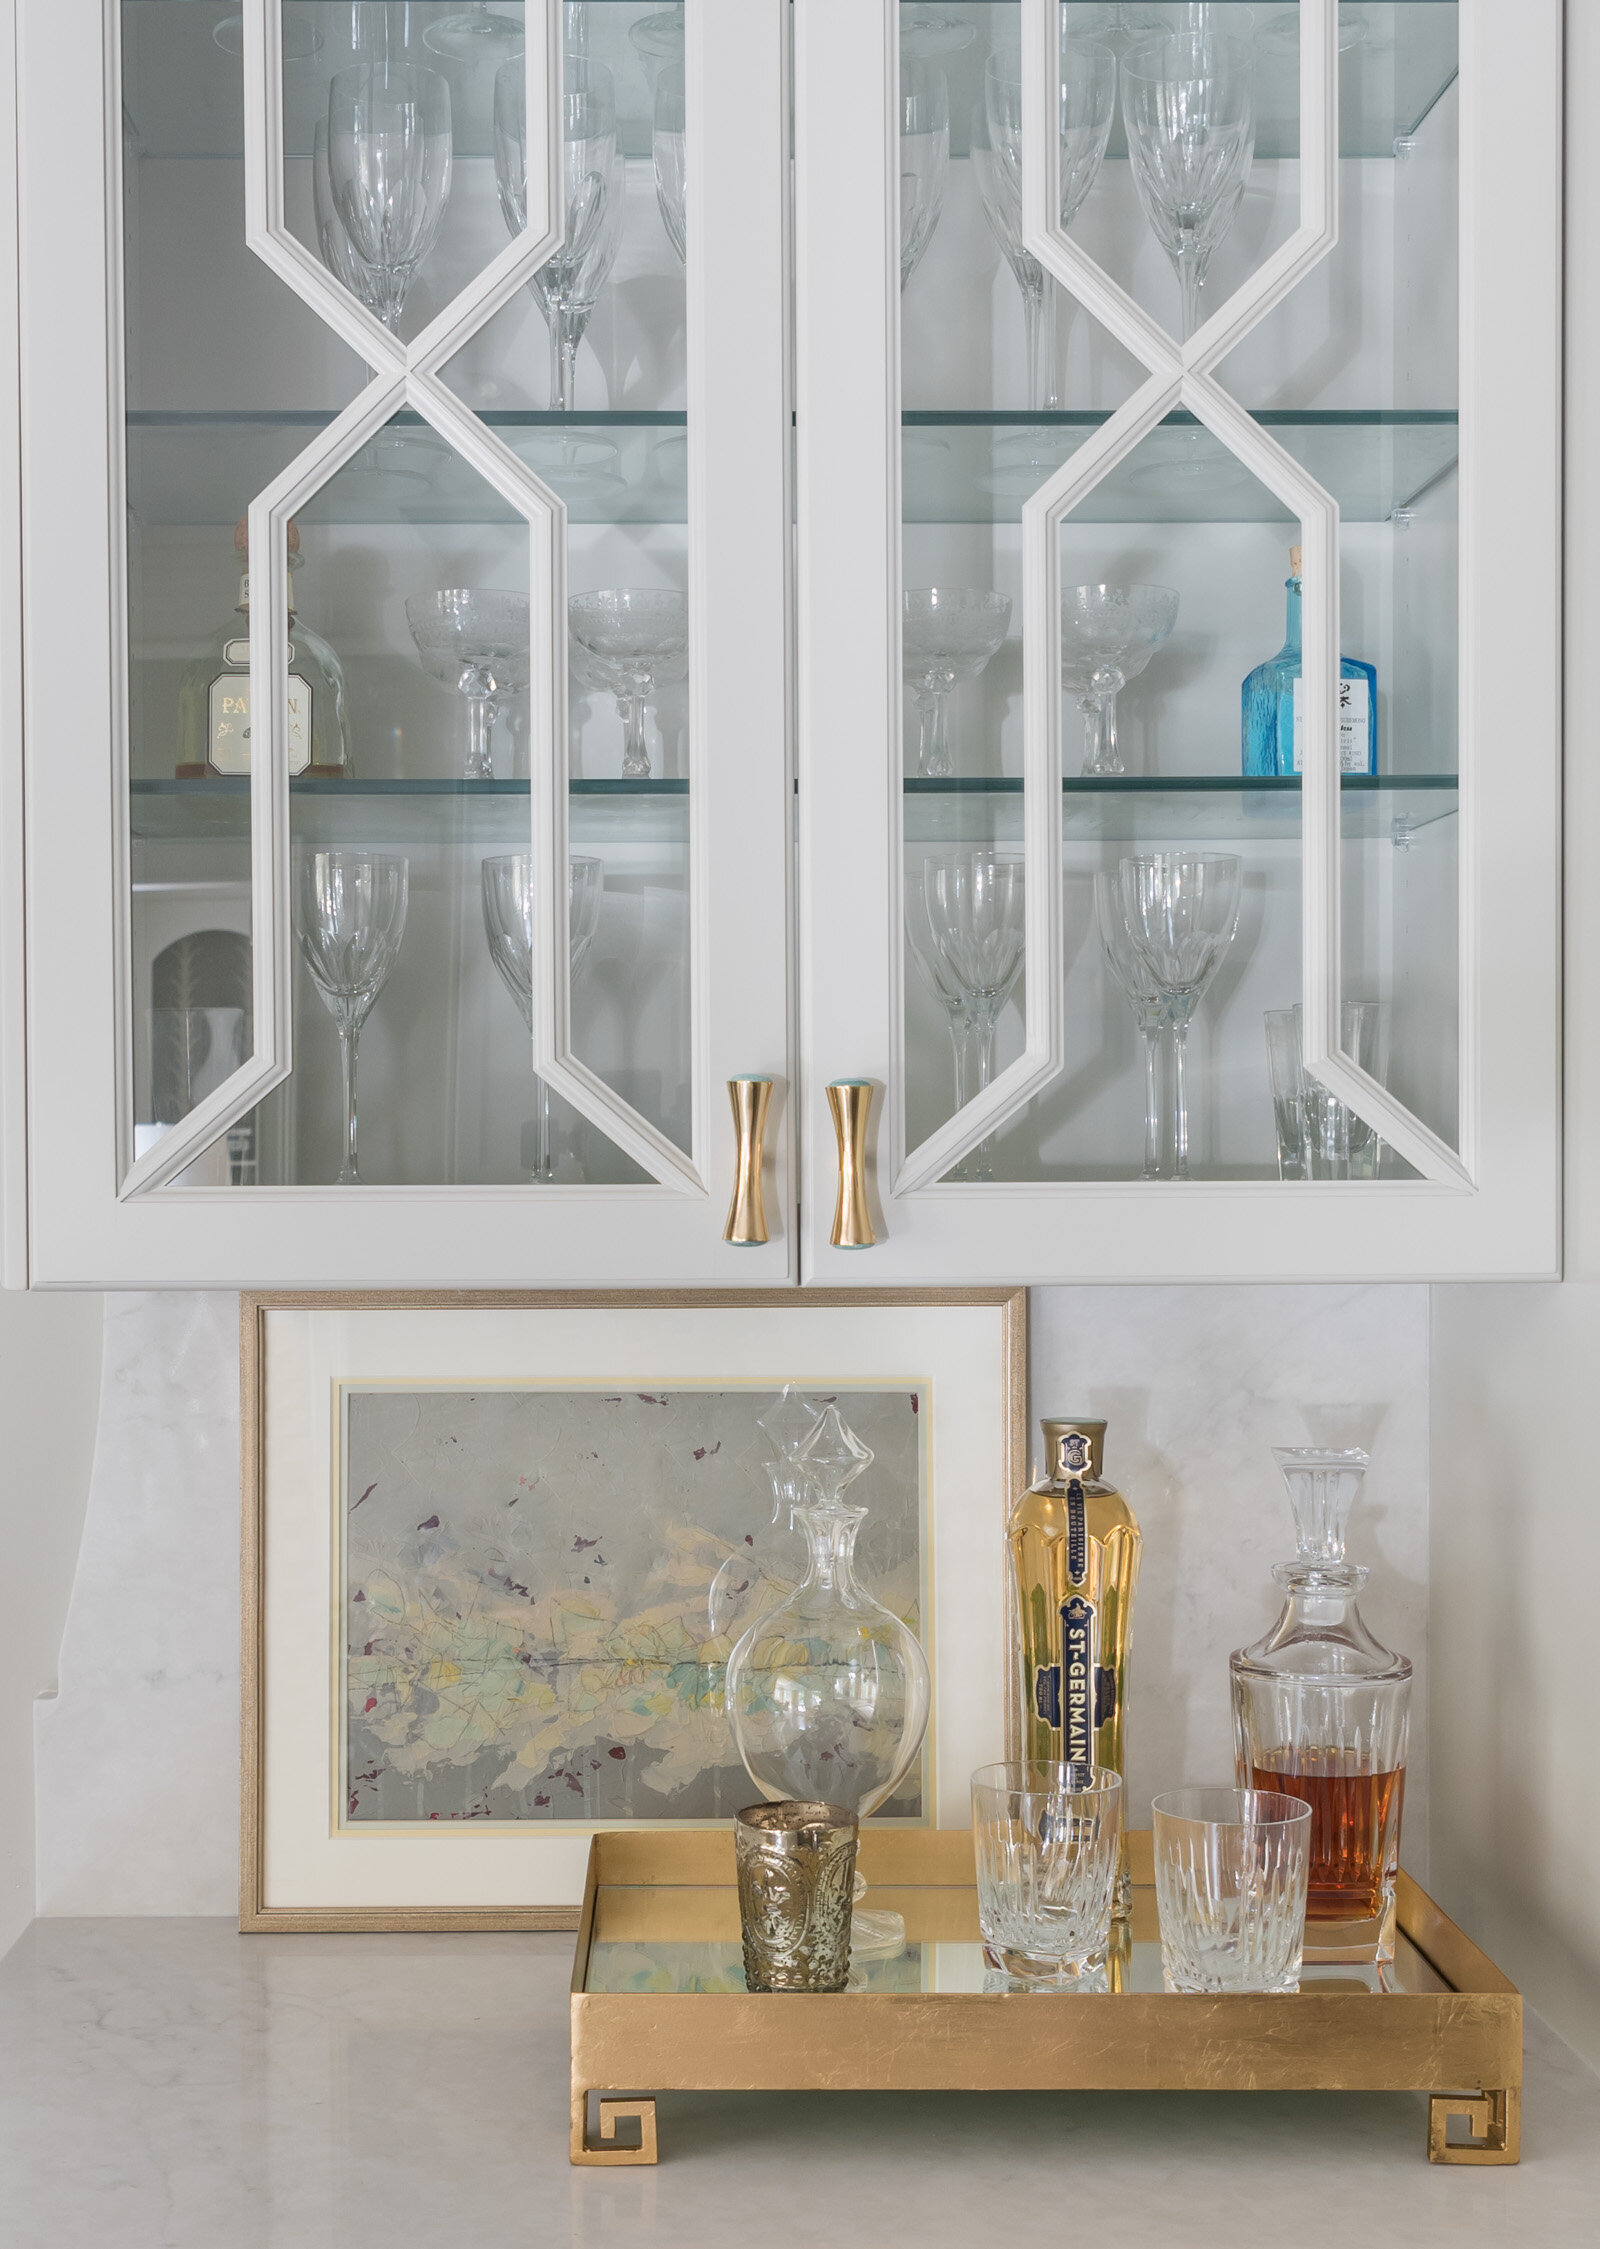 Bar vignette by Brooke Cole Interiors featuring an original art piece by Alexis Walter